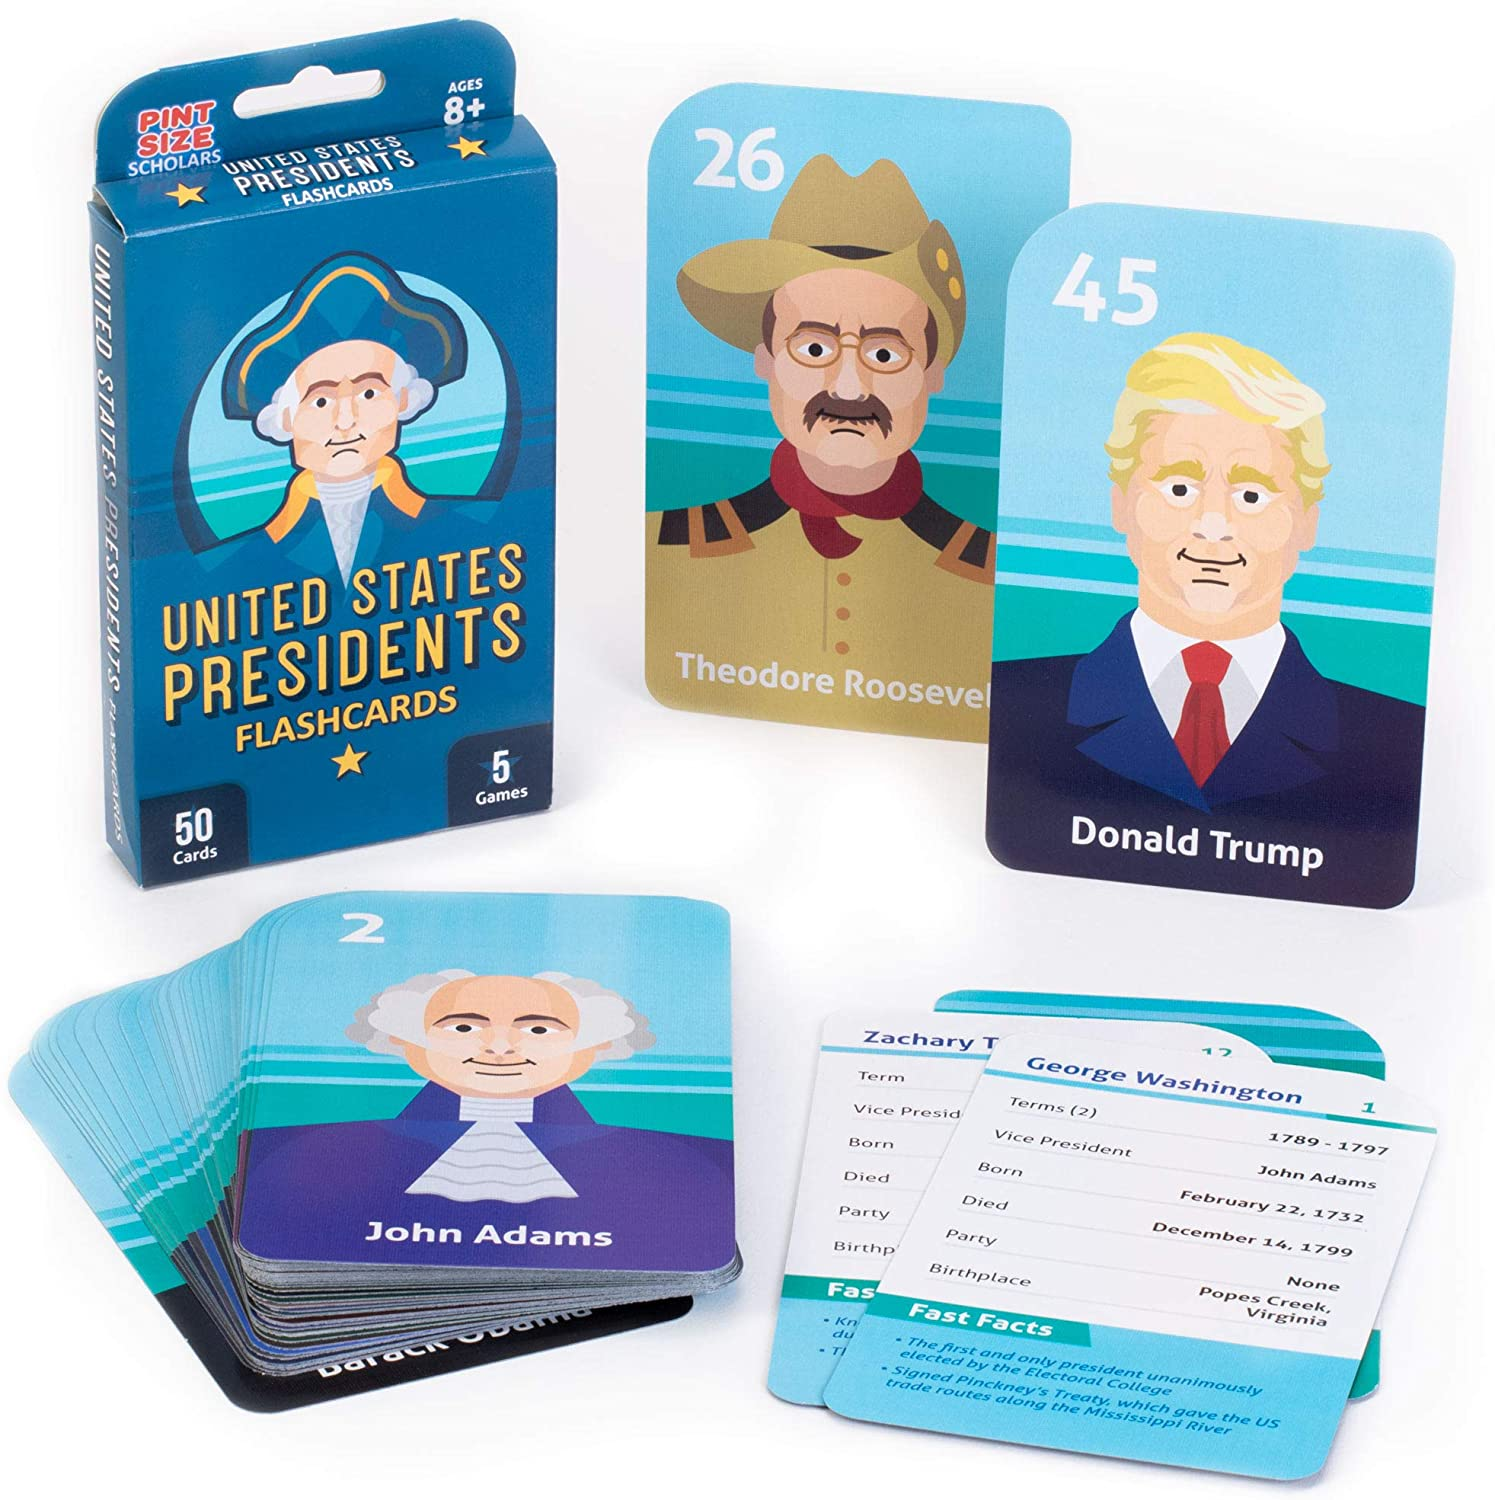 PSS Presidents Flashcard Set - 50 Deluxe Cards!